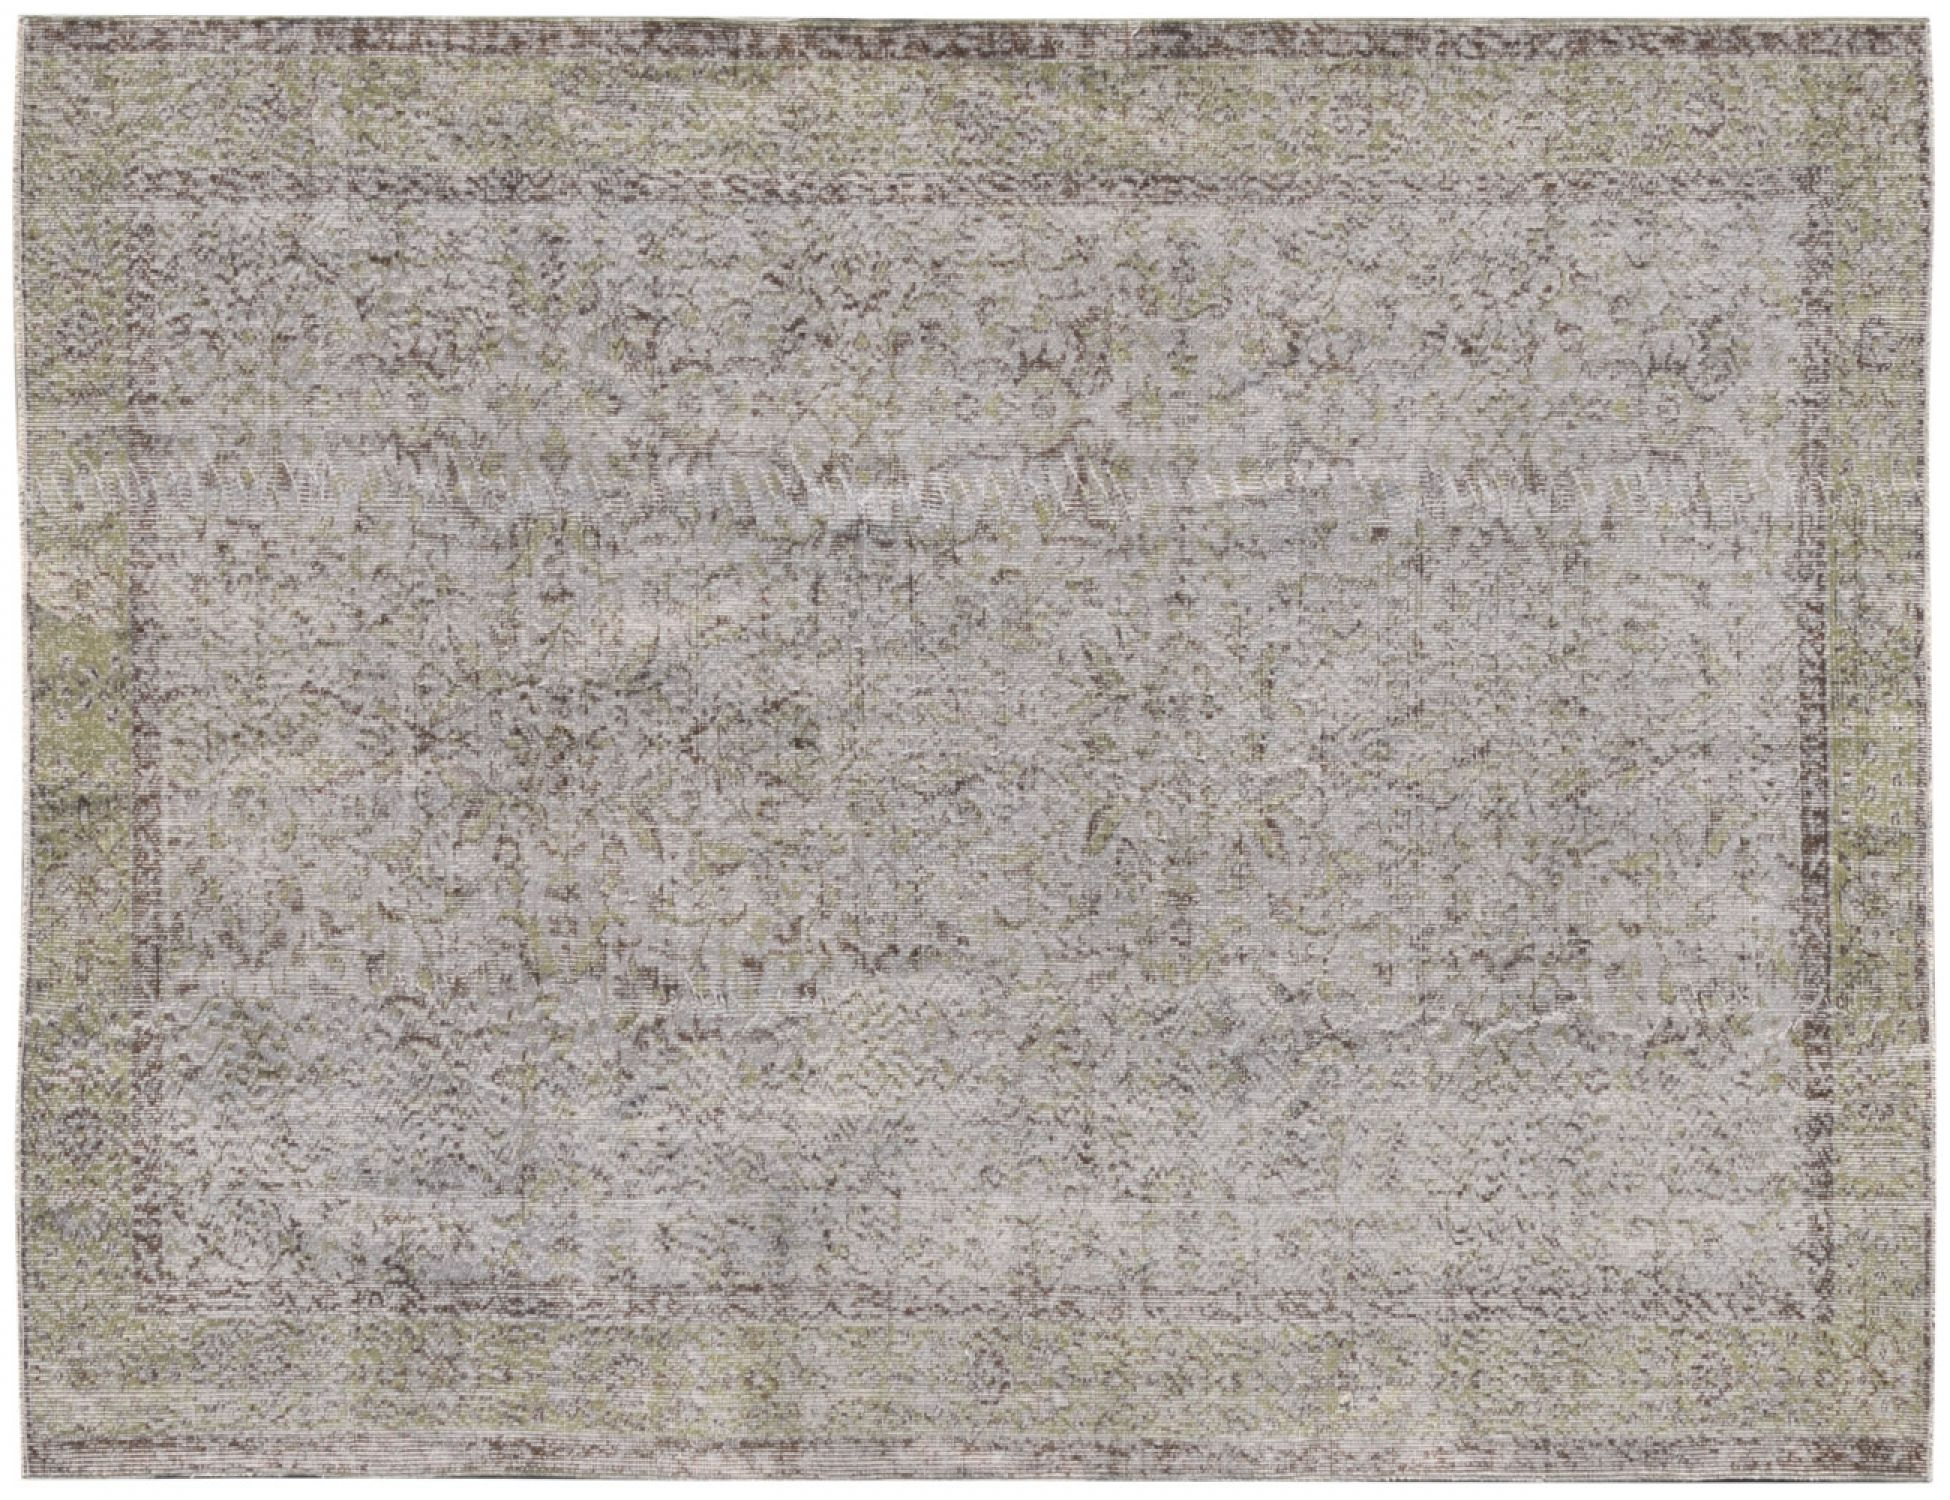 Vintage Carpet  grey <br/>287 x 187 cm